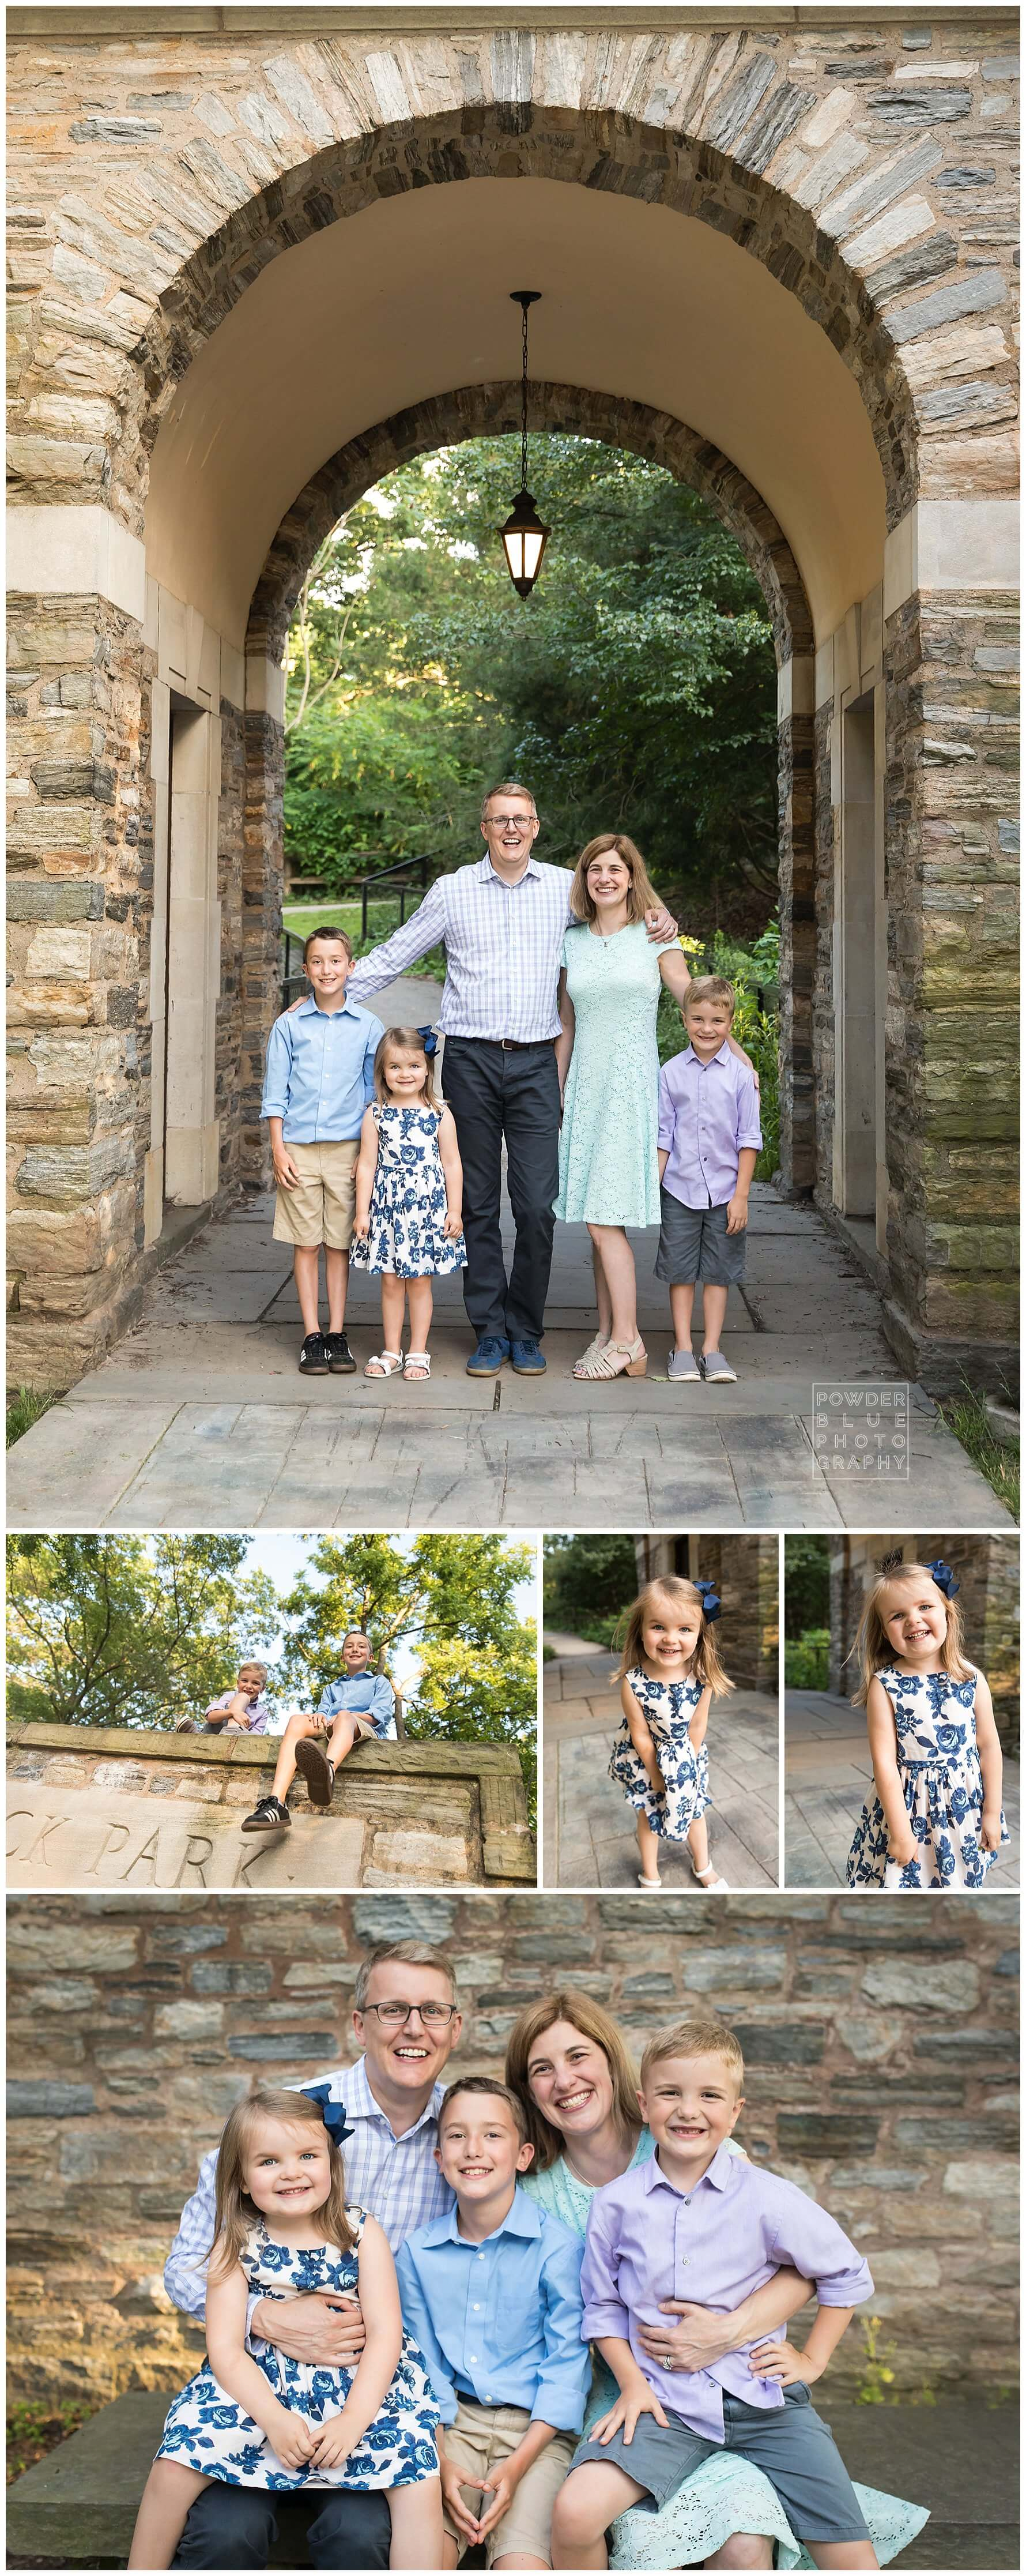 pittsburgh family portrait 70-200 canon lens at f4. on location family at Frick Park